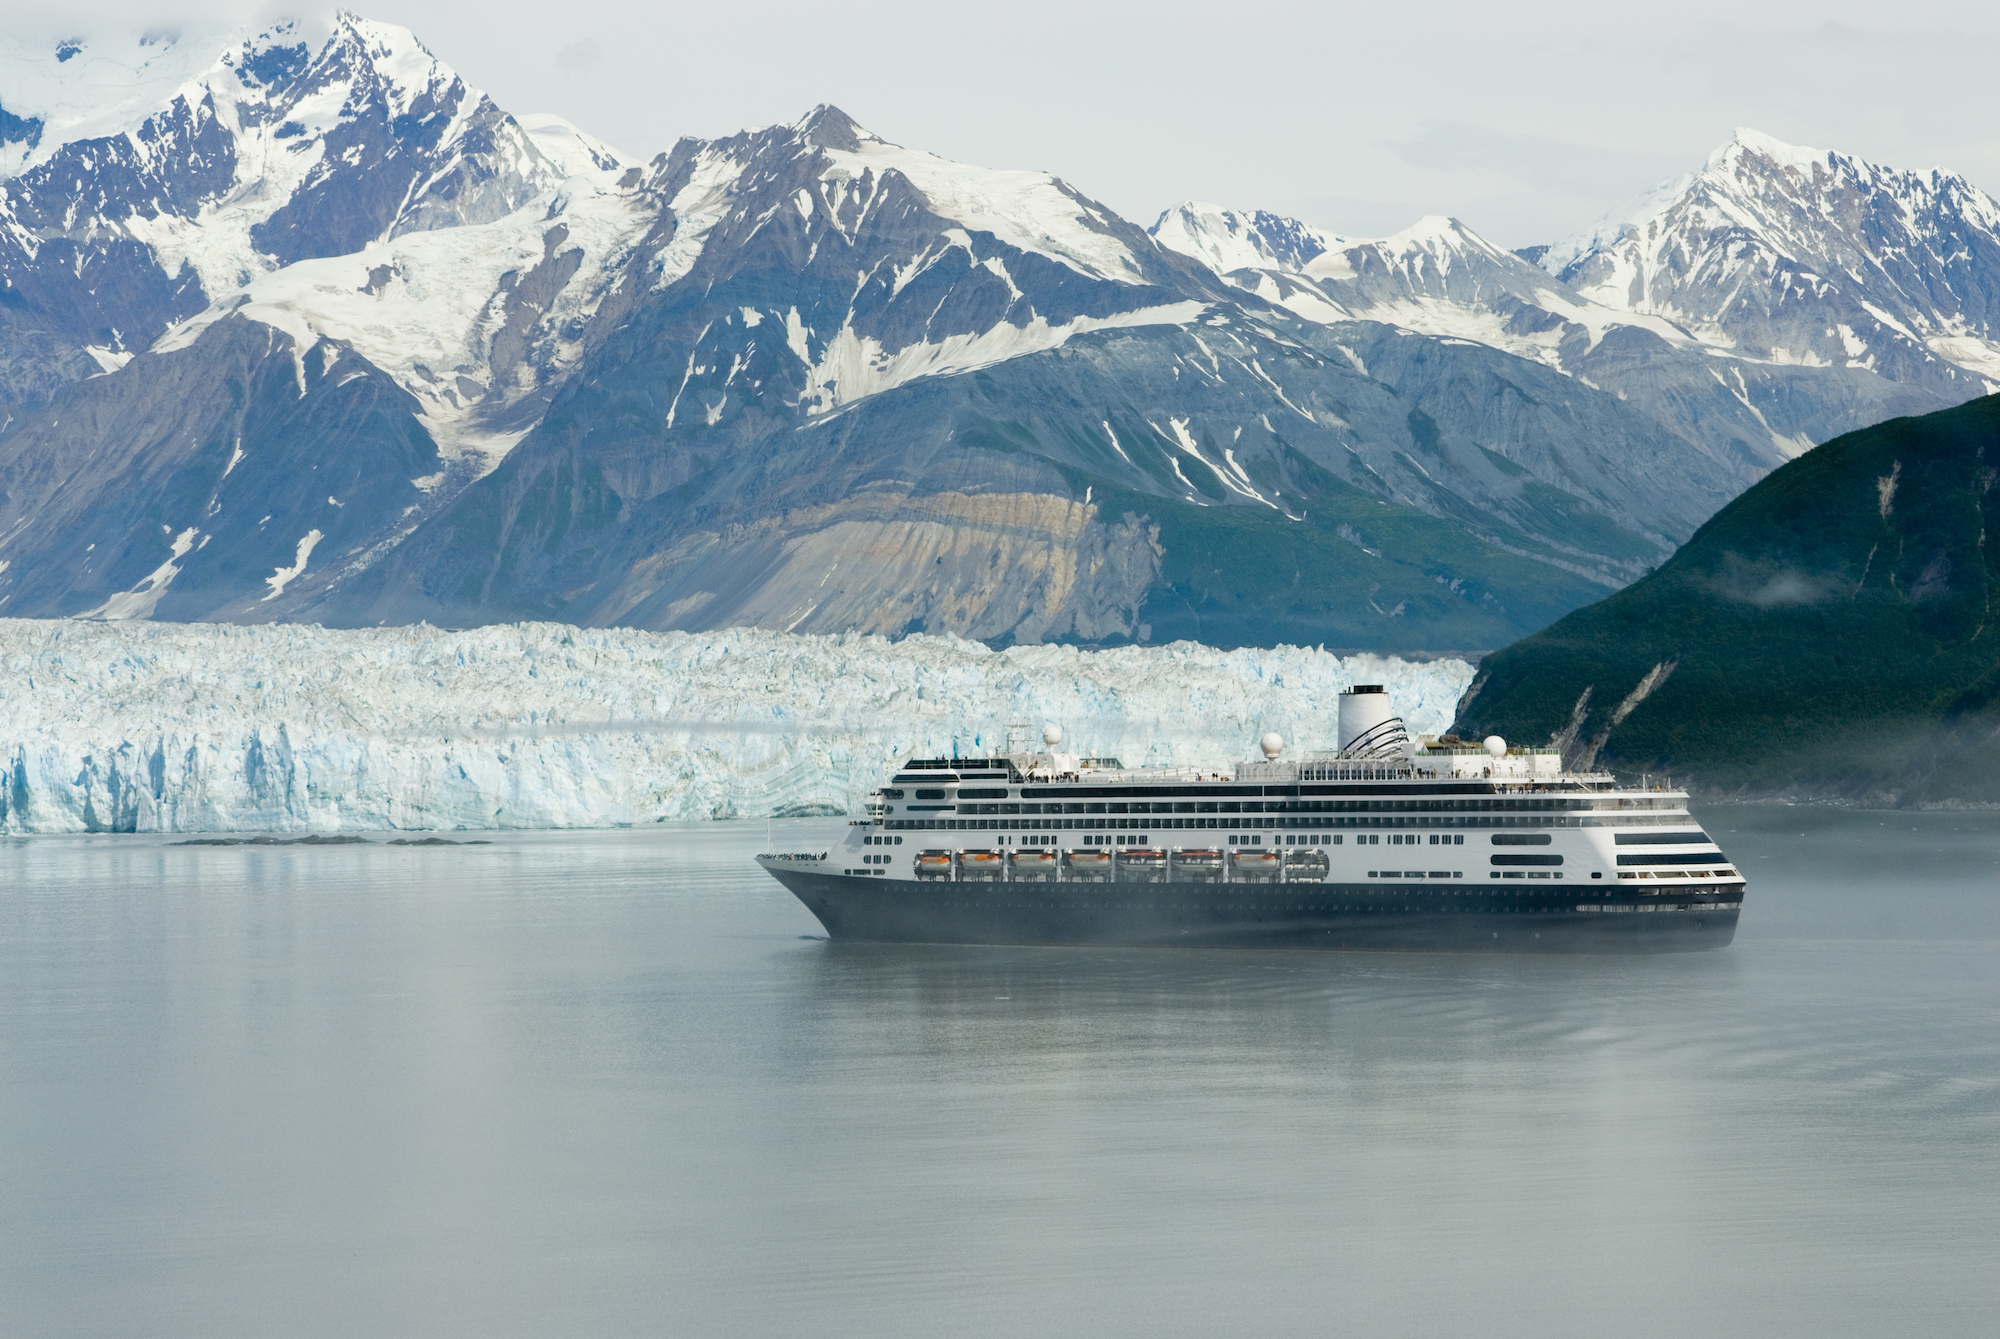 alaskan cruise ship with glacier and mountains in the background